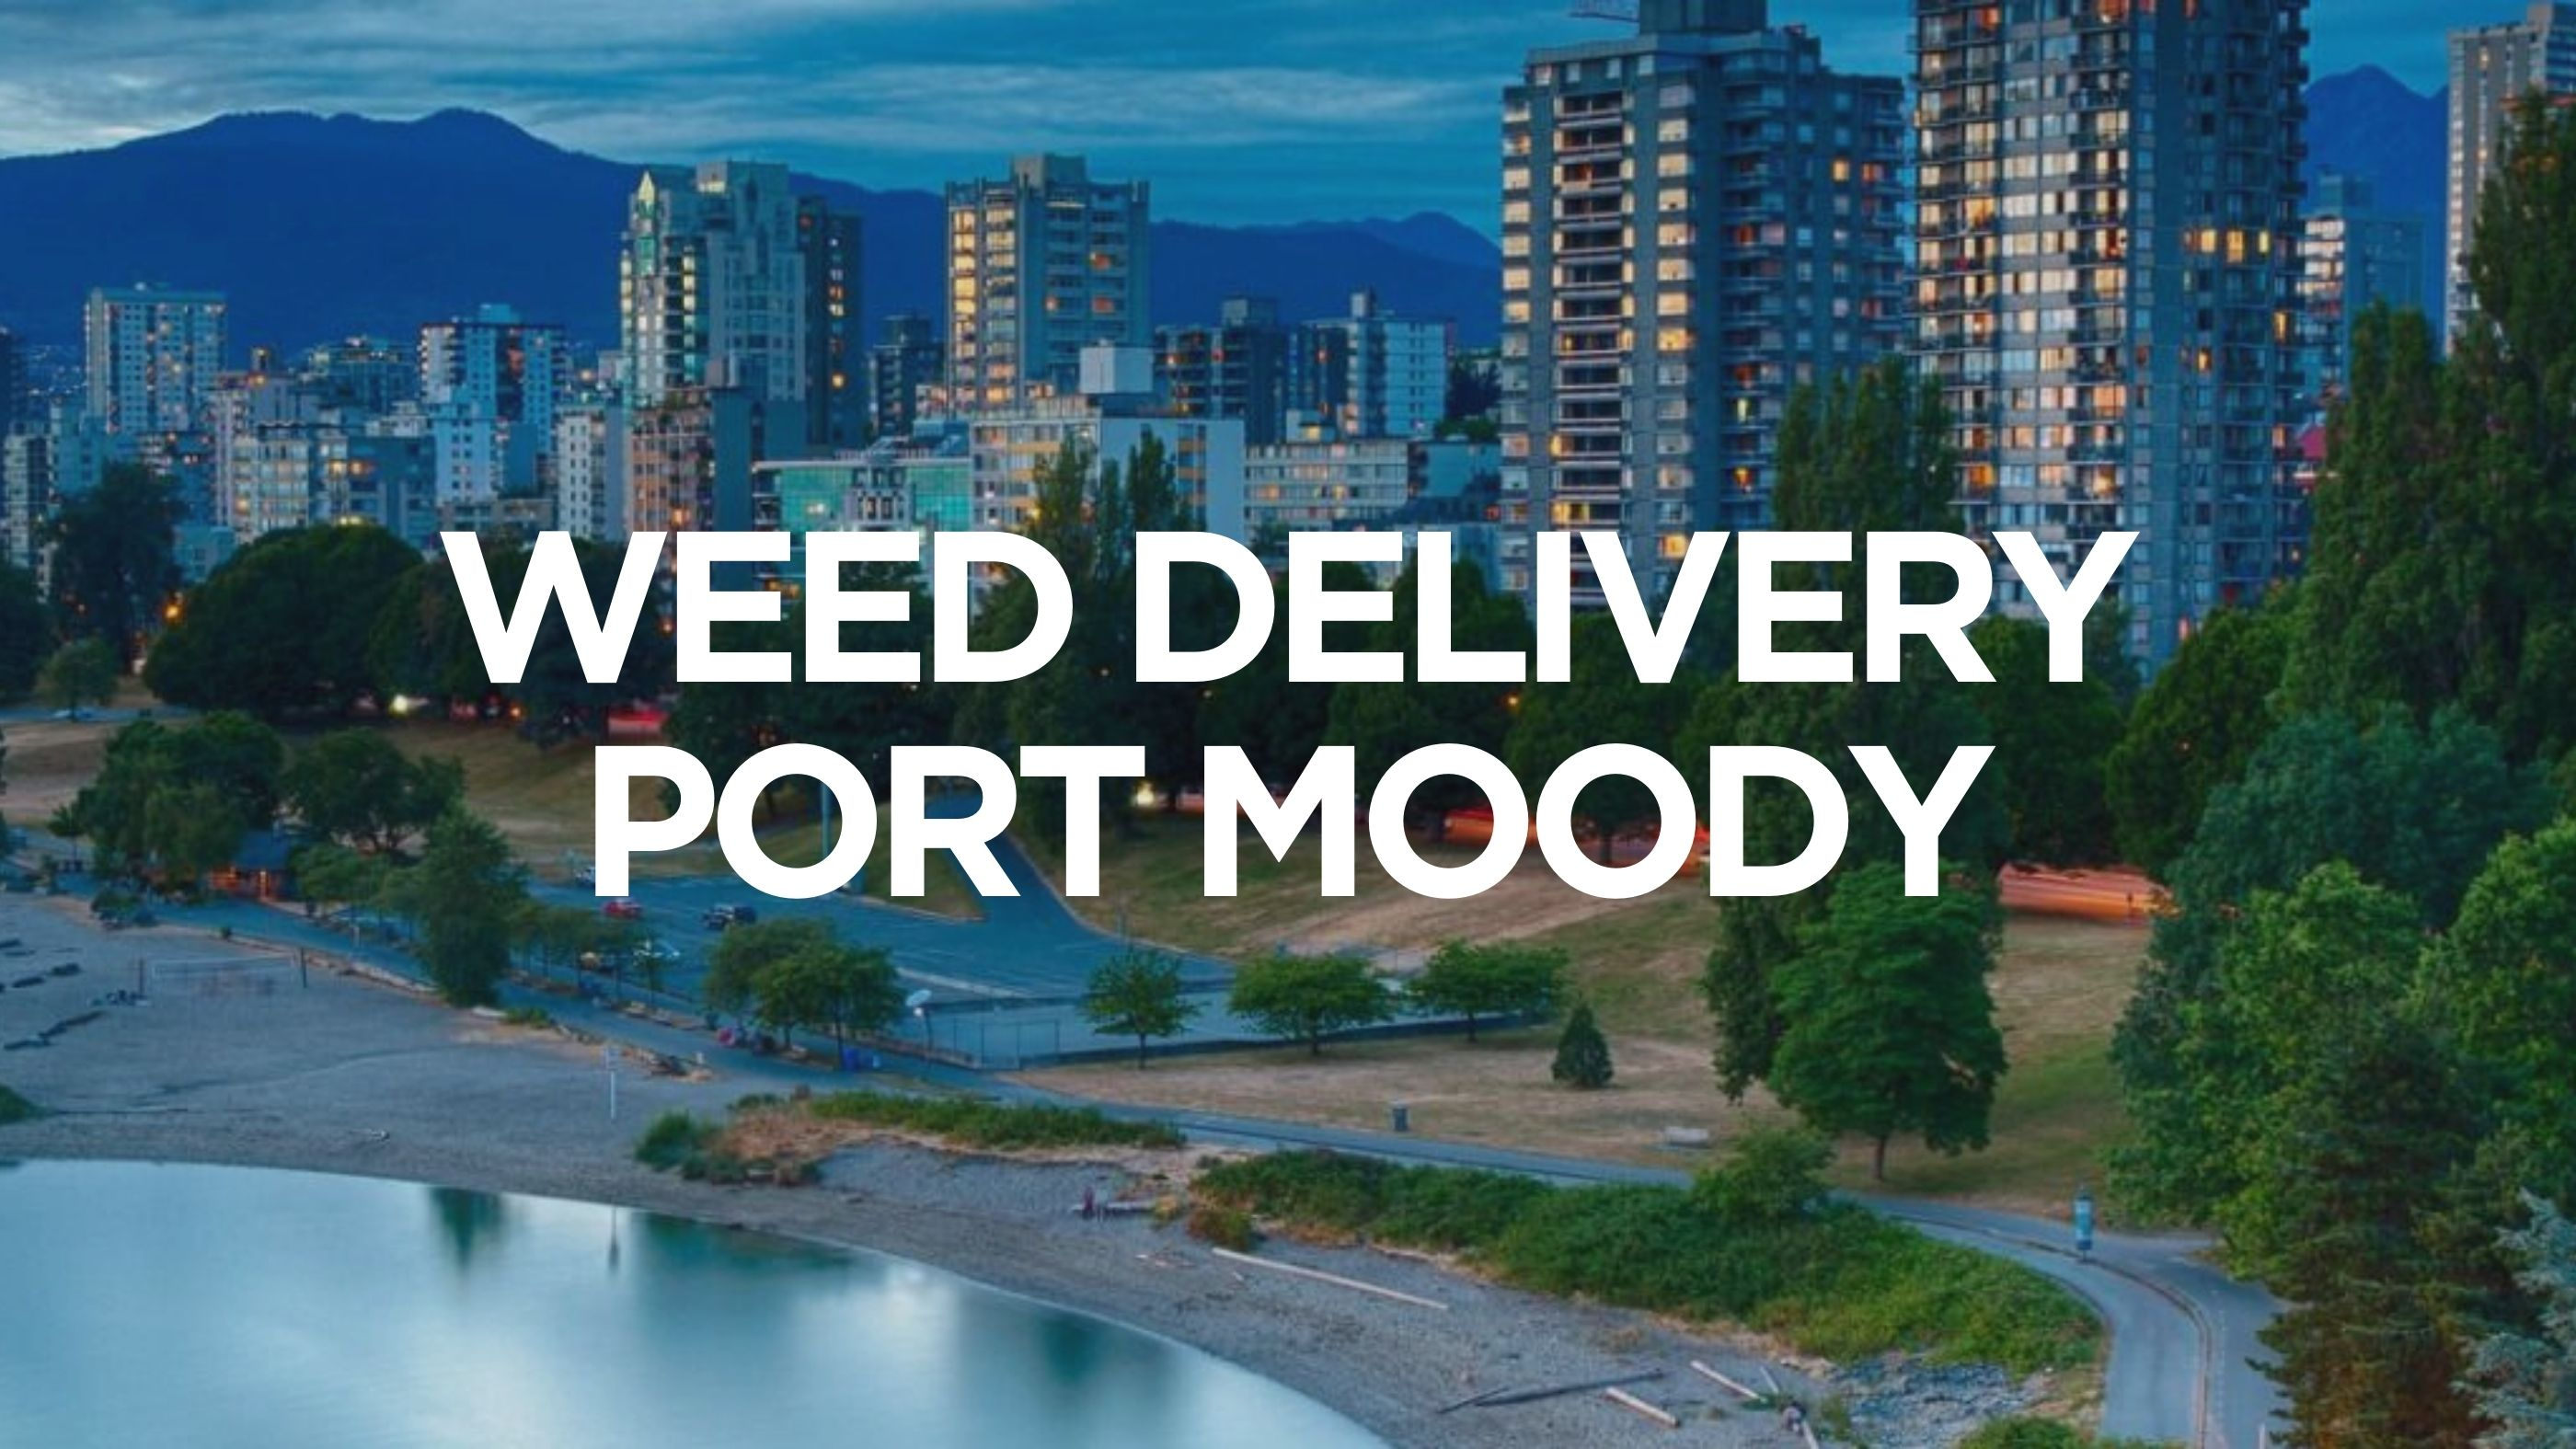 Weed Delivery Port Moody